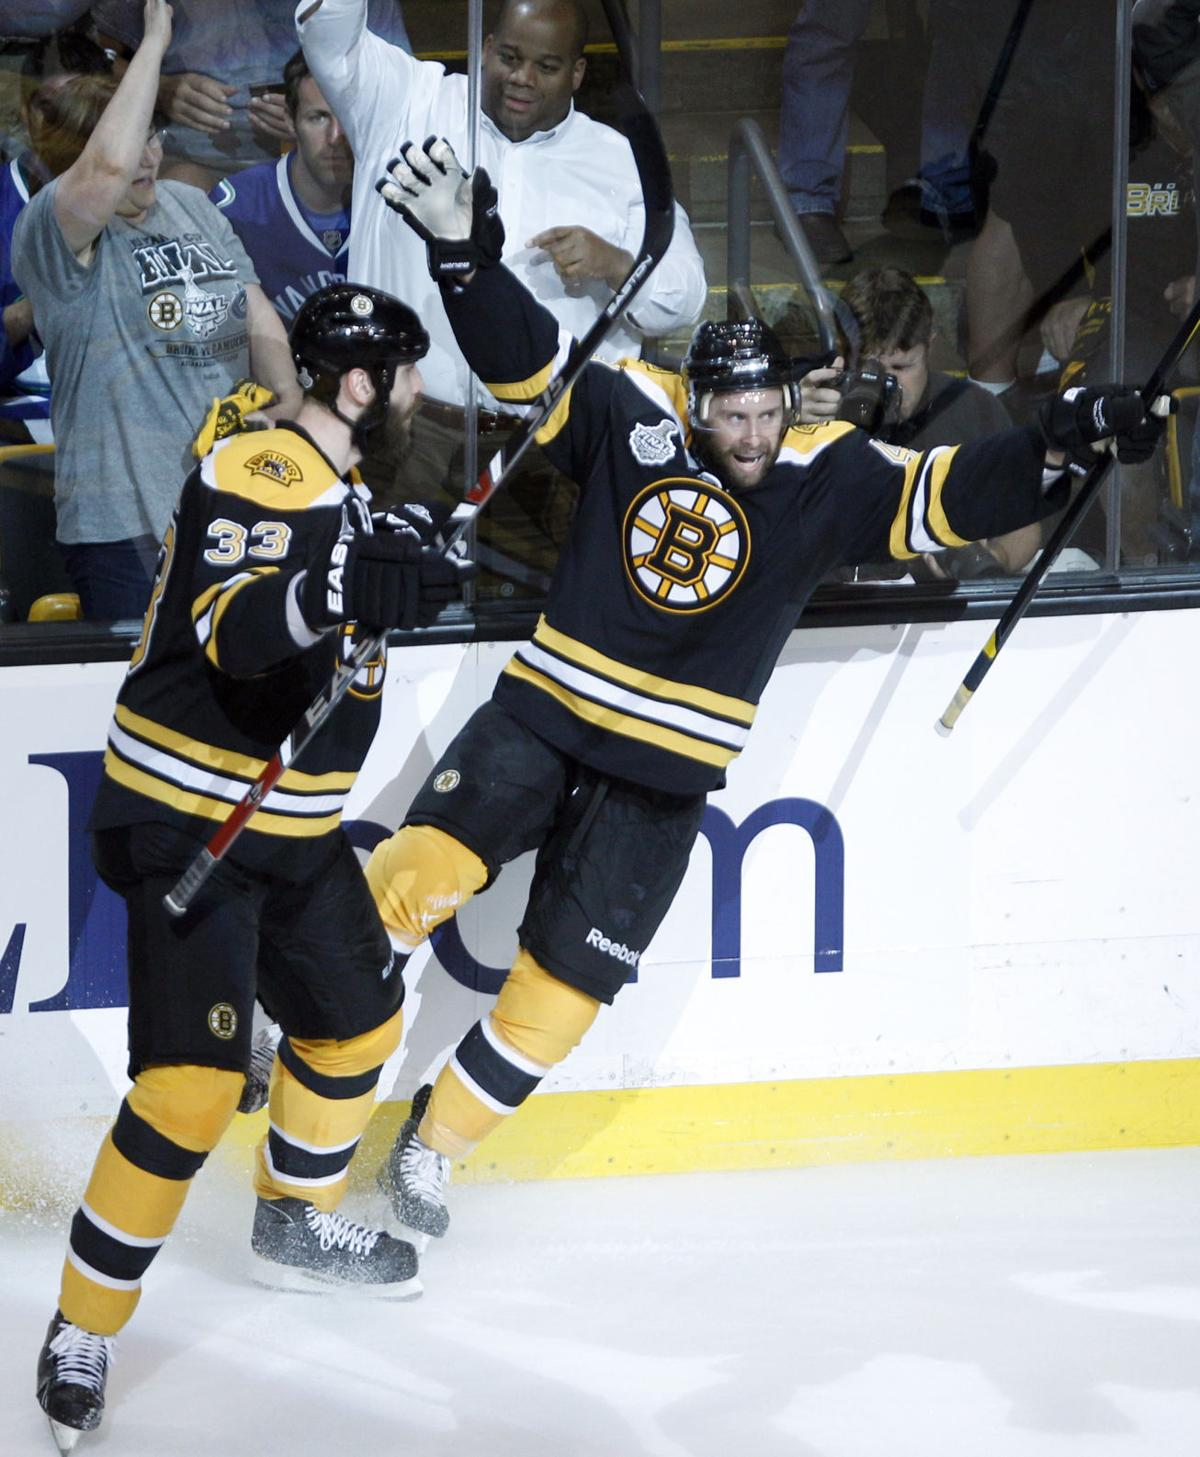 Rays ink NHL affiliation deal with Bruins